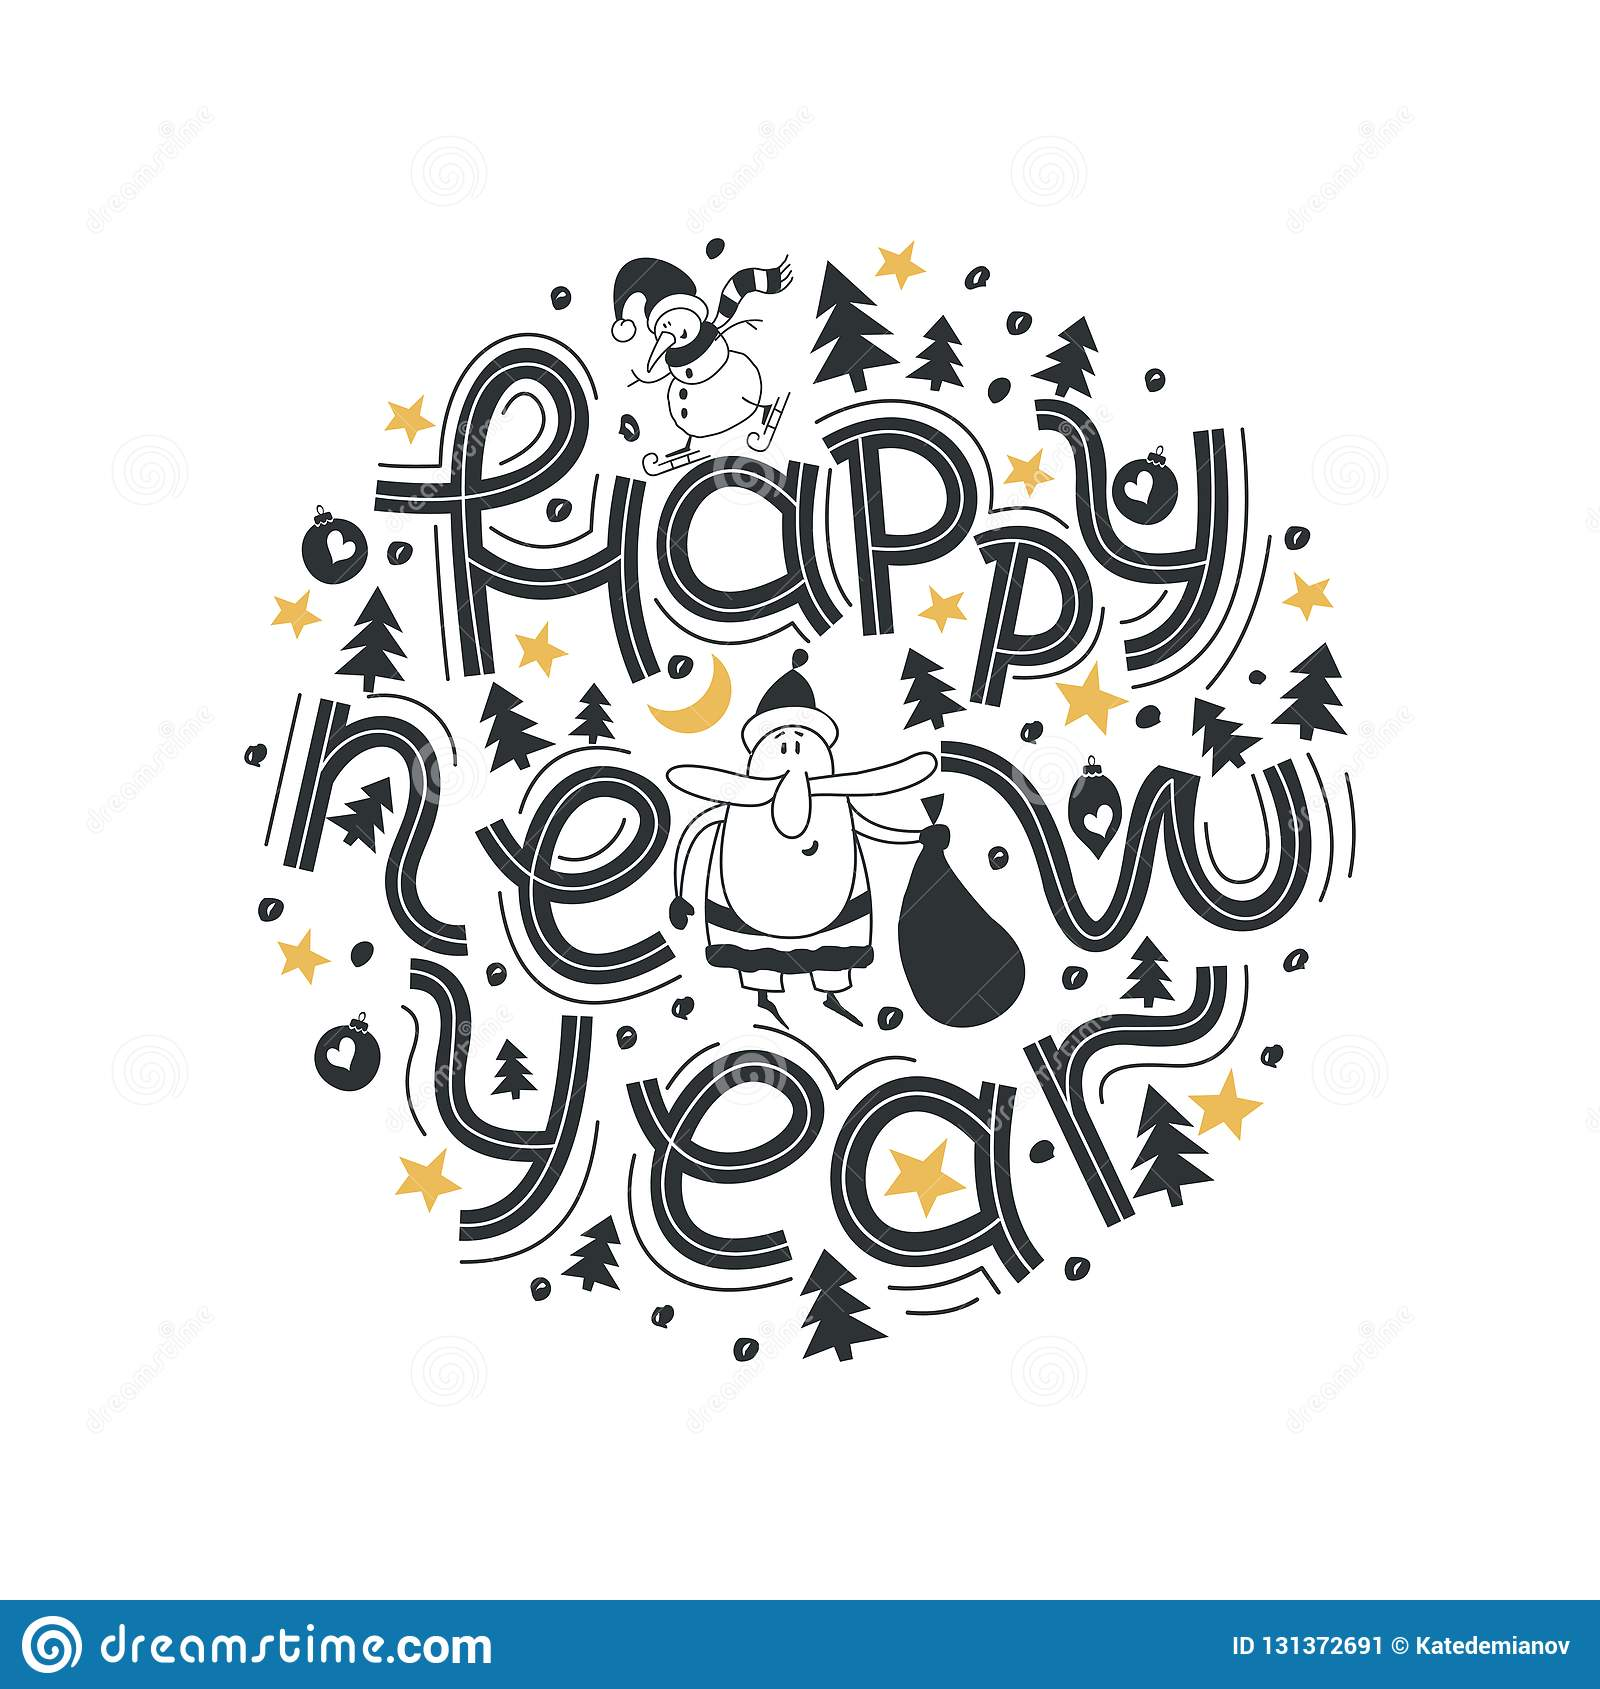 Happy New Year. Lettering phrase Merry And Bright. Modern lettering for cards, posters, t-shirts, etc. with hand drawn elements.